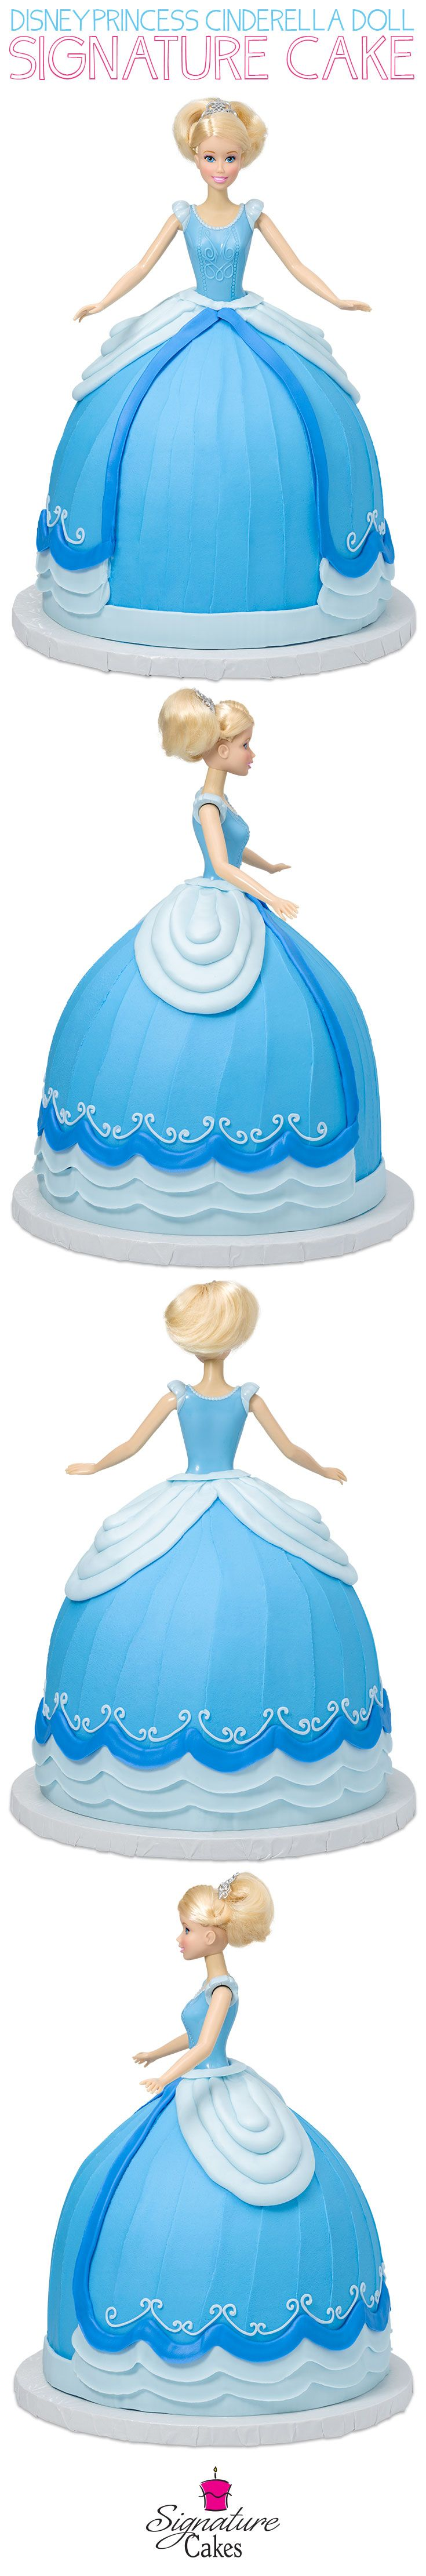 Learn how to make DecoPac's Disney Princess Cinderella Doll Signature Cake